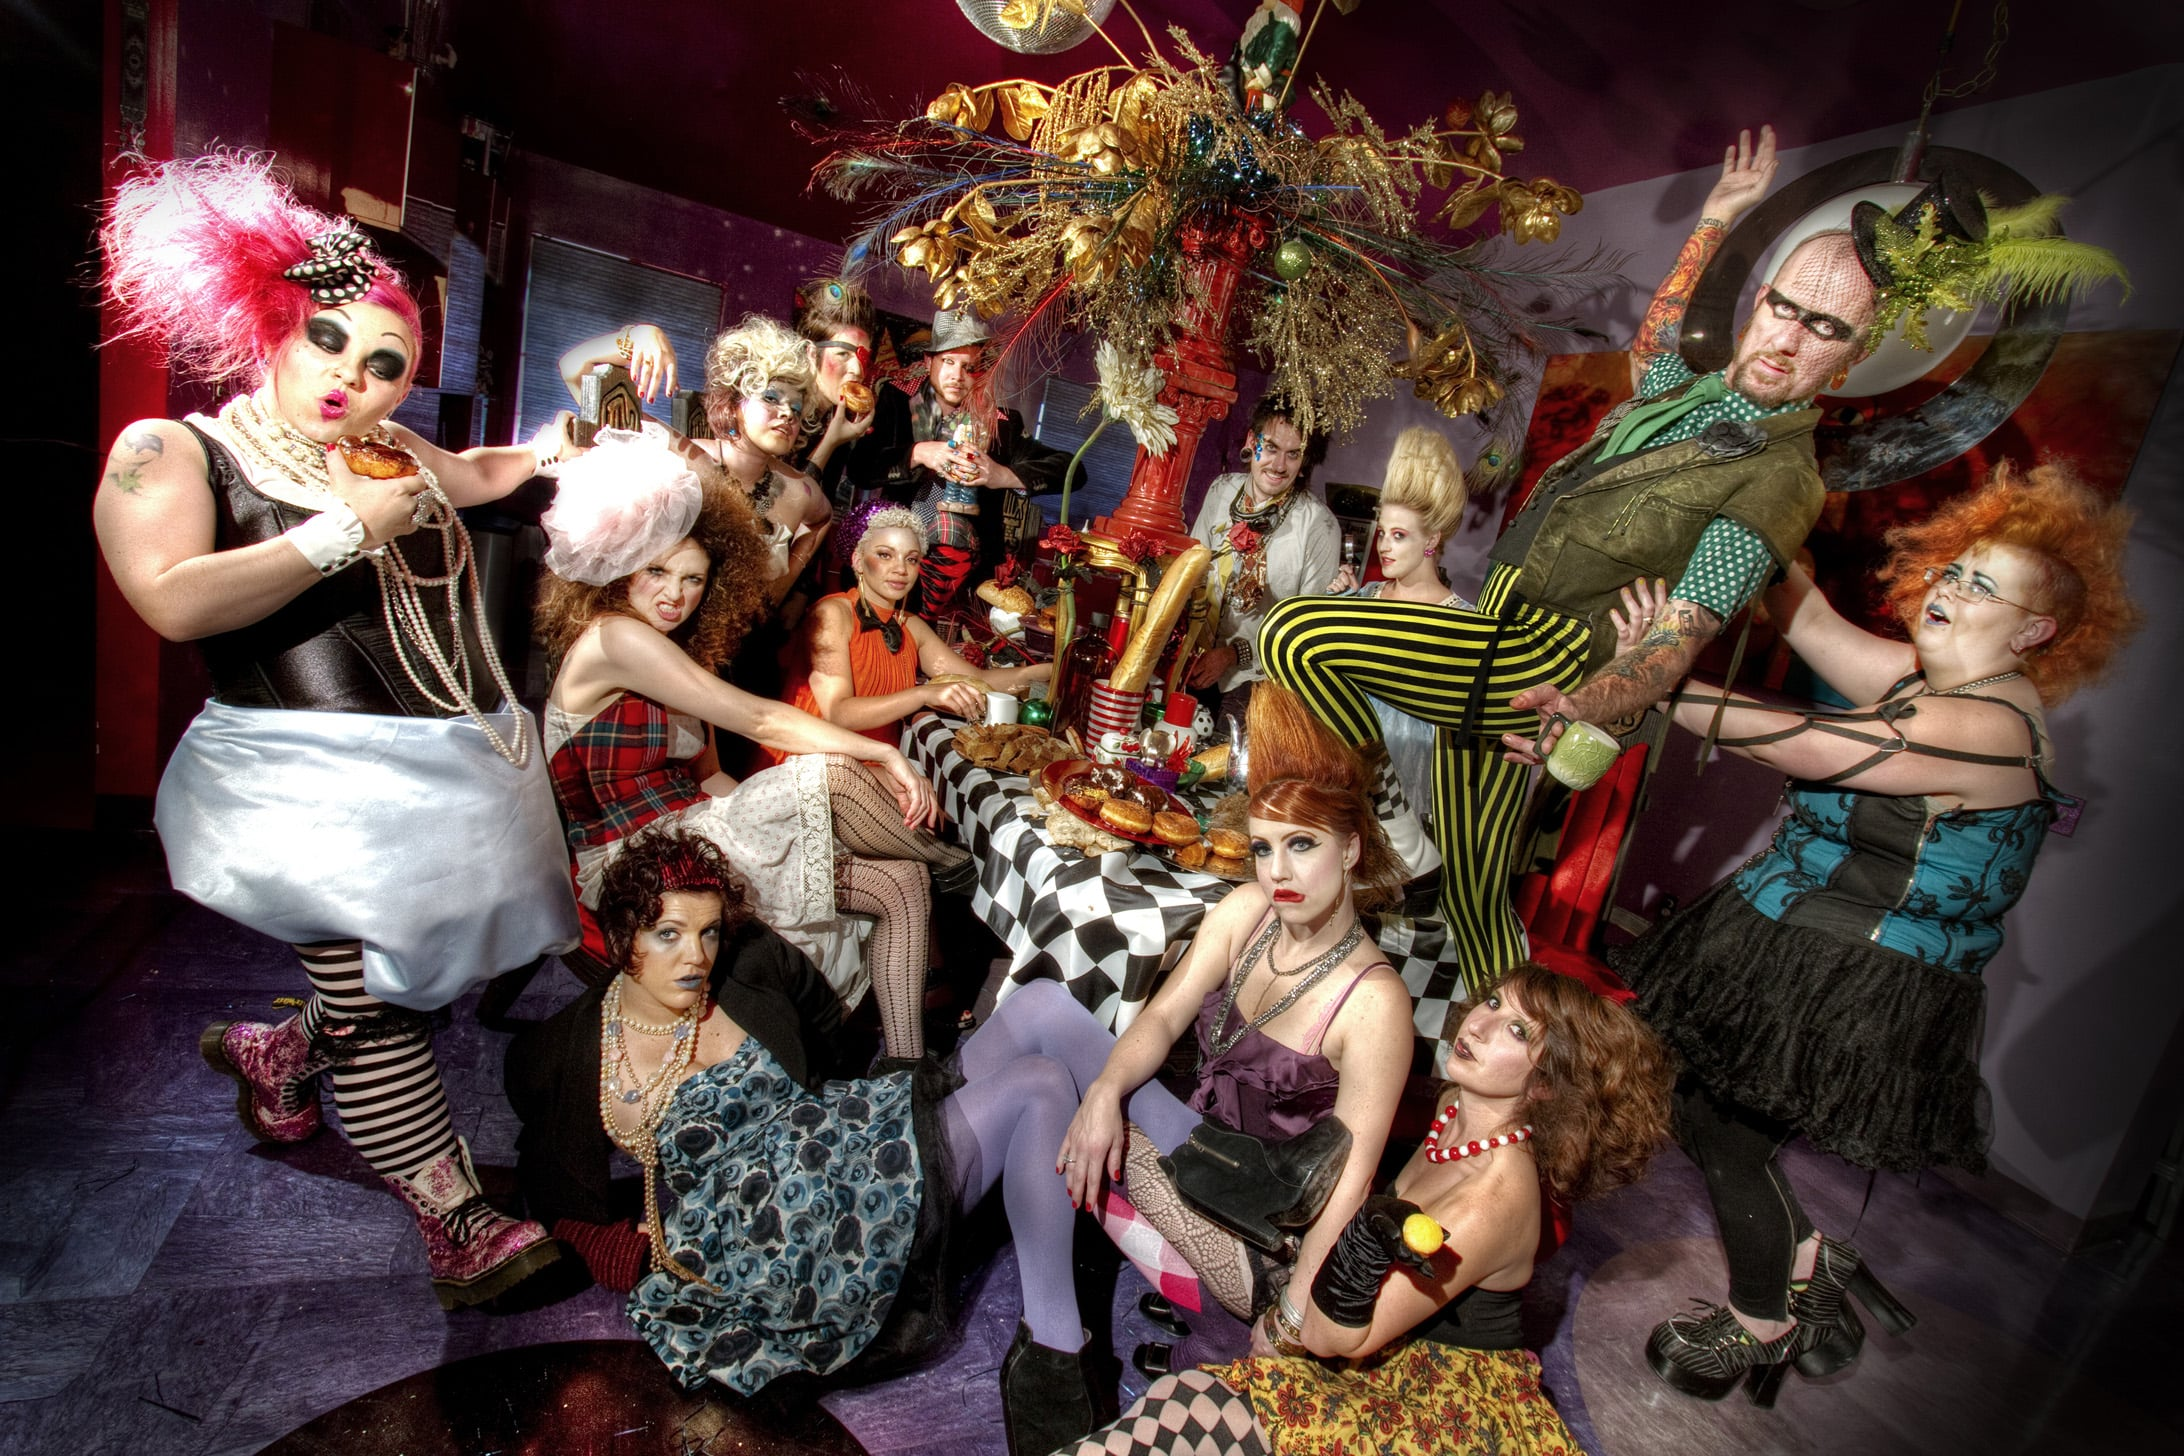 urban hair salon - mad hatter tea party promo